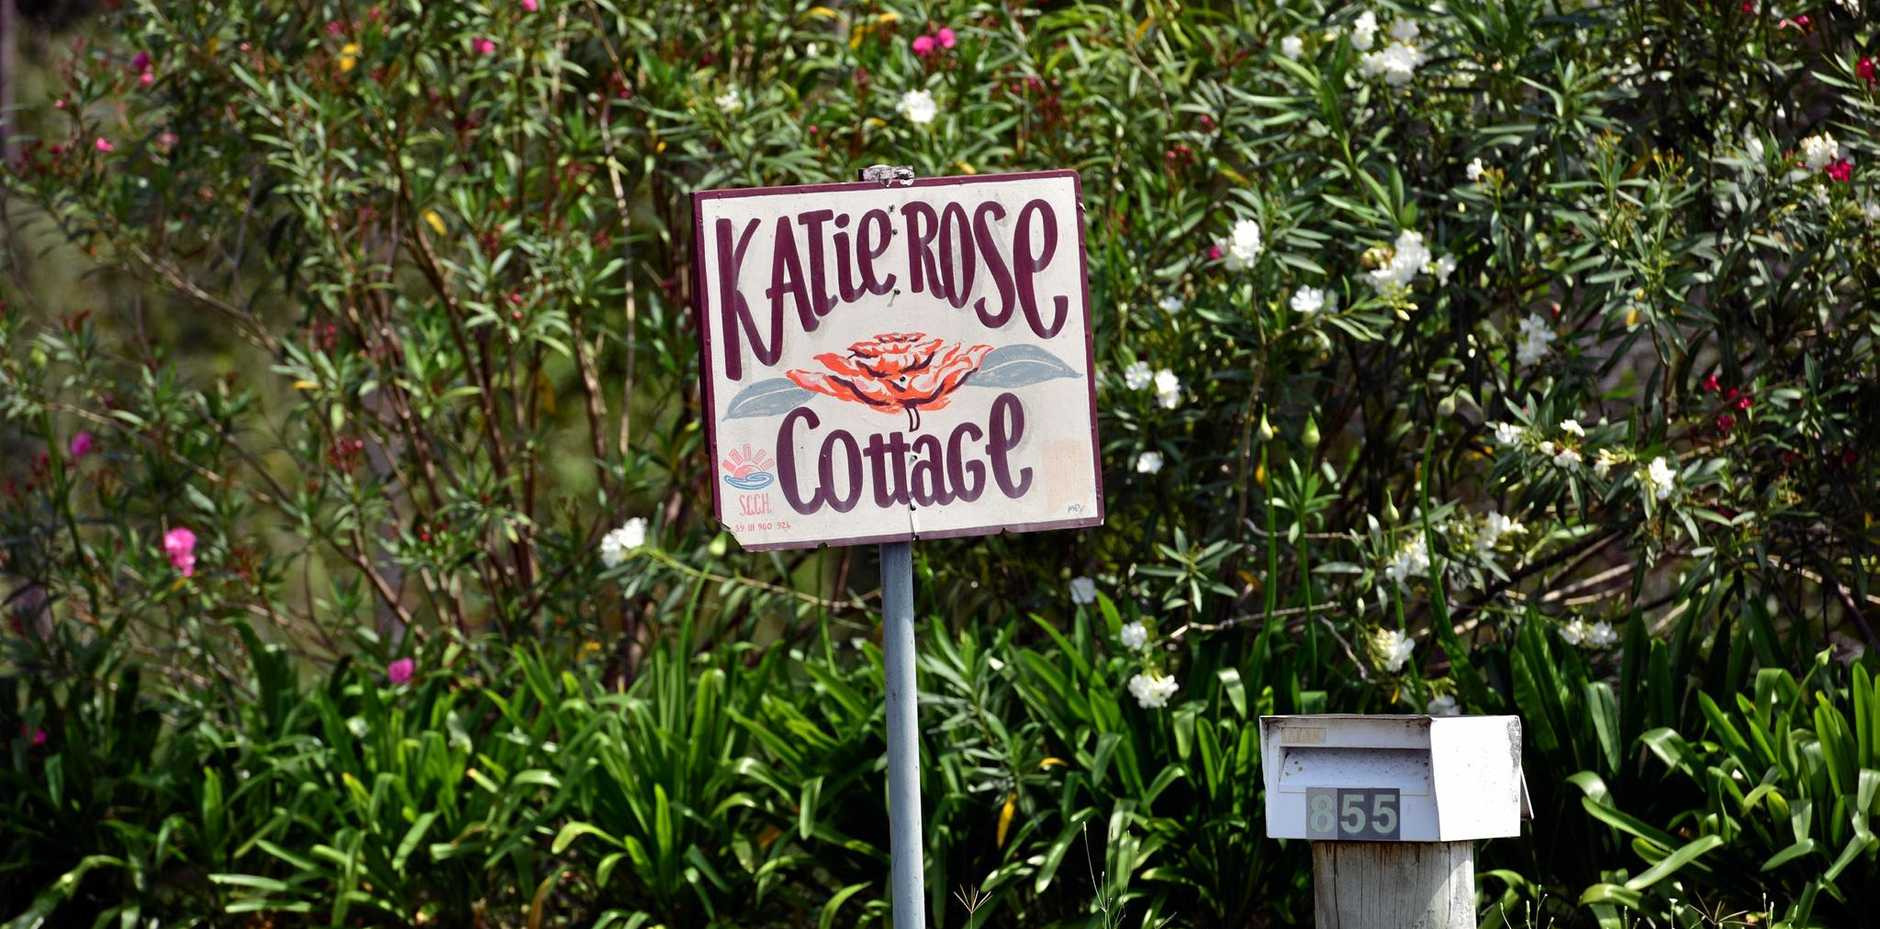 Katie Rose Cottage will have a new home at an as-yet undisclosed Doonan location.